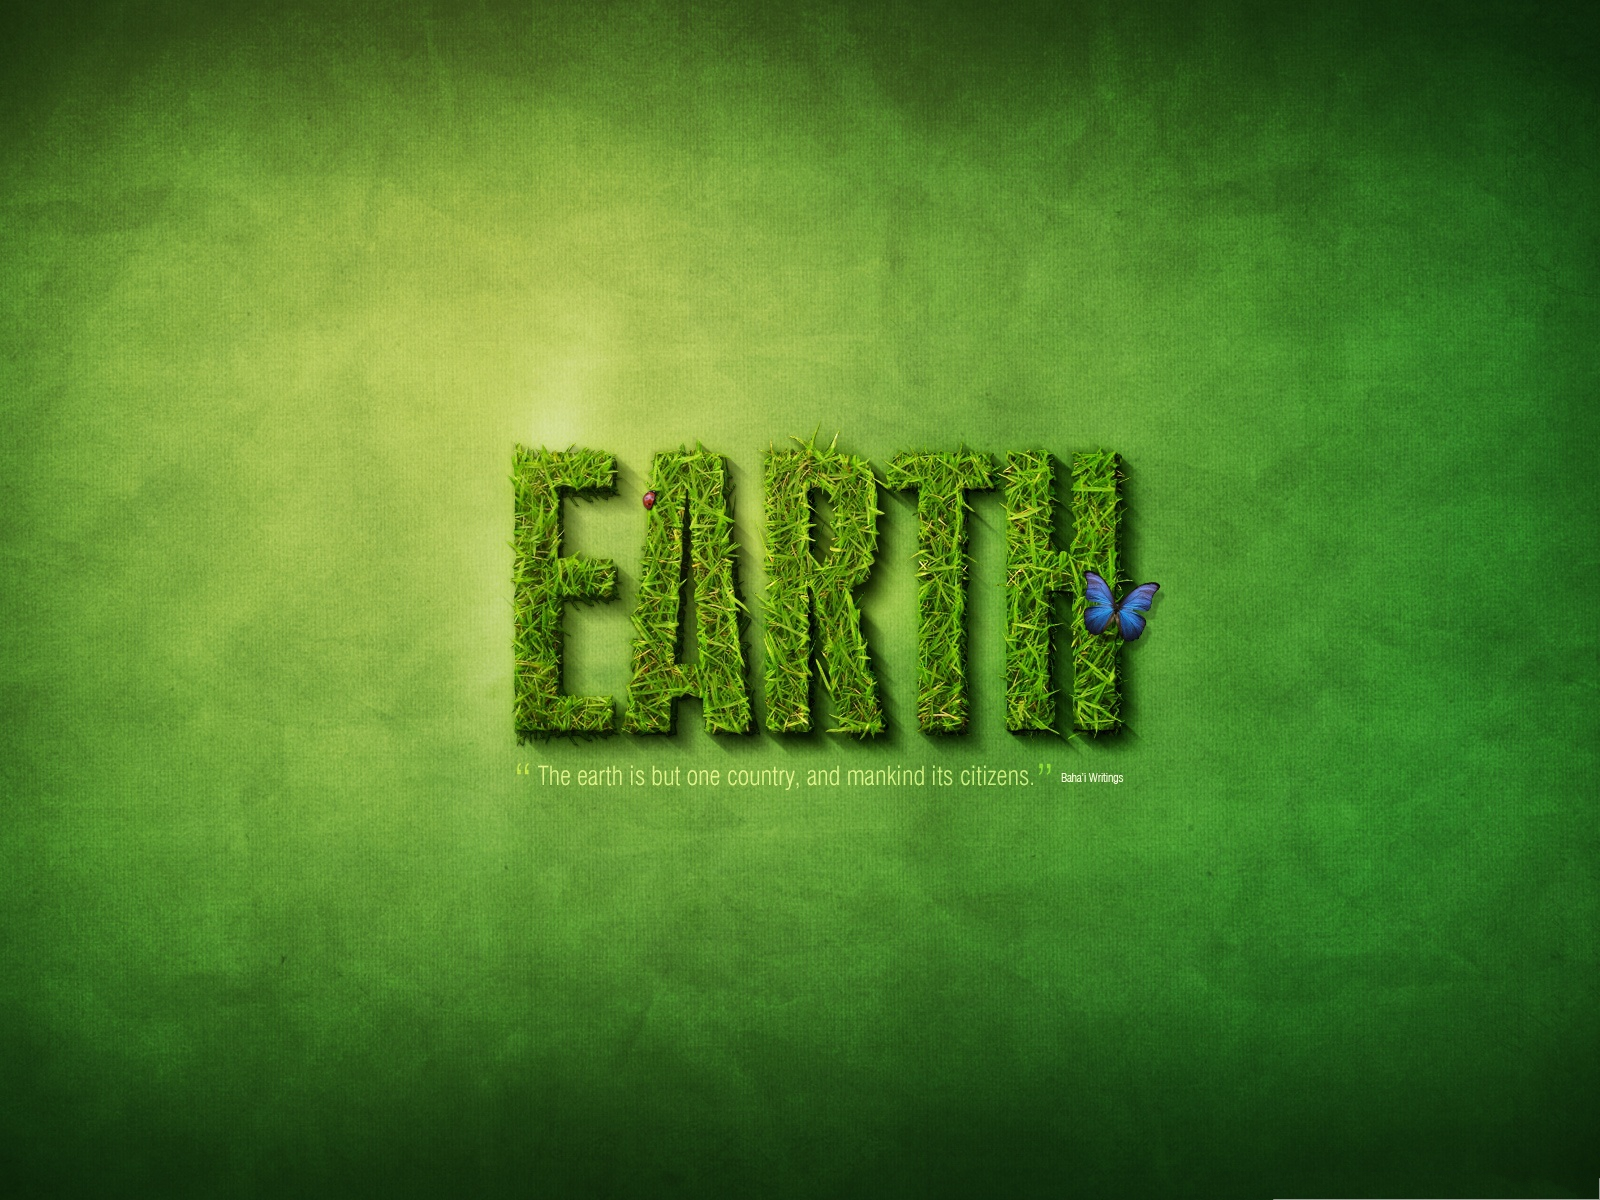 click to free download the wallpaper--Wallpaper Desktop Computer - Green Grass Text Effect, Encouraging Man to Protect the EARTH! 1600X1200 free wallpaper download